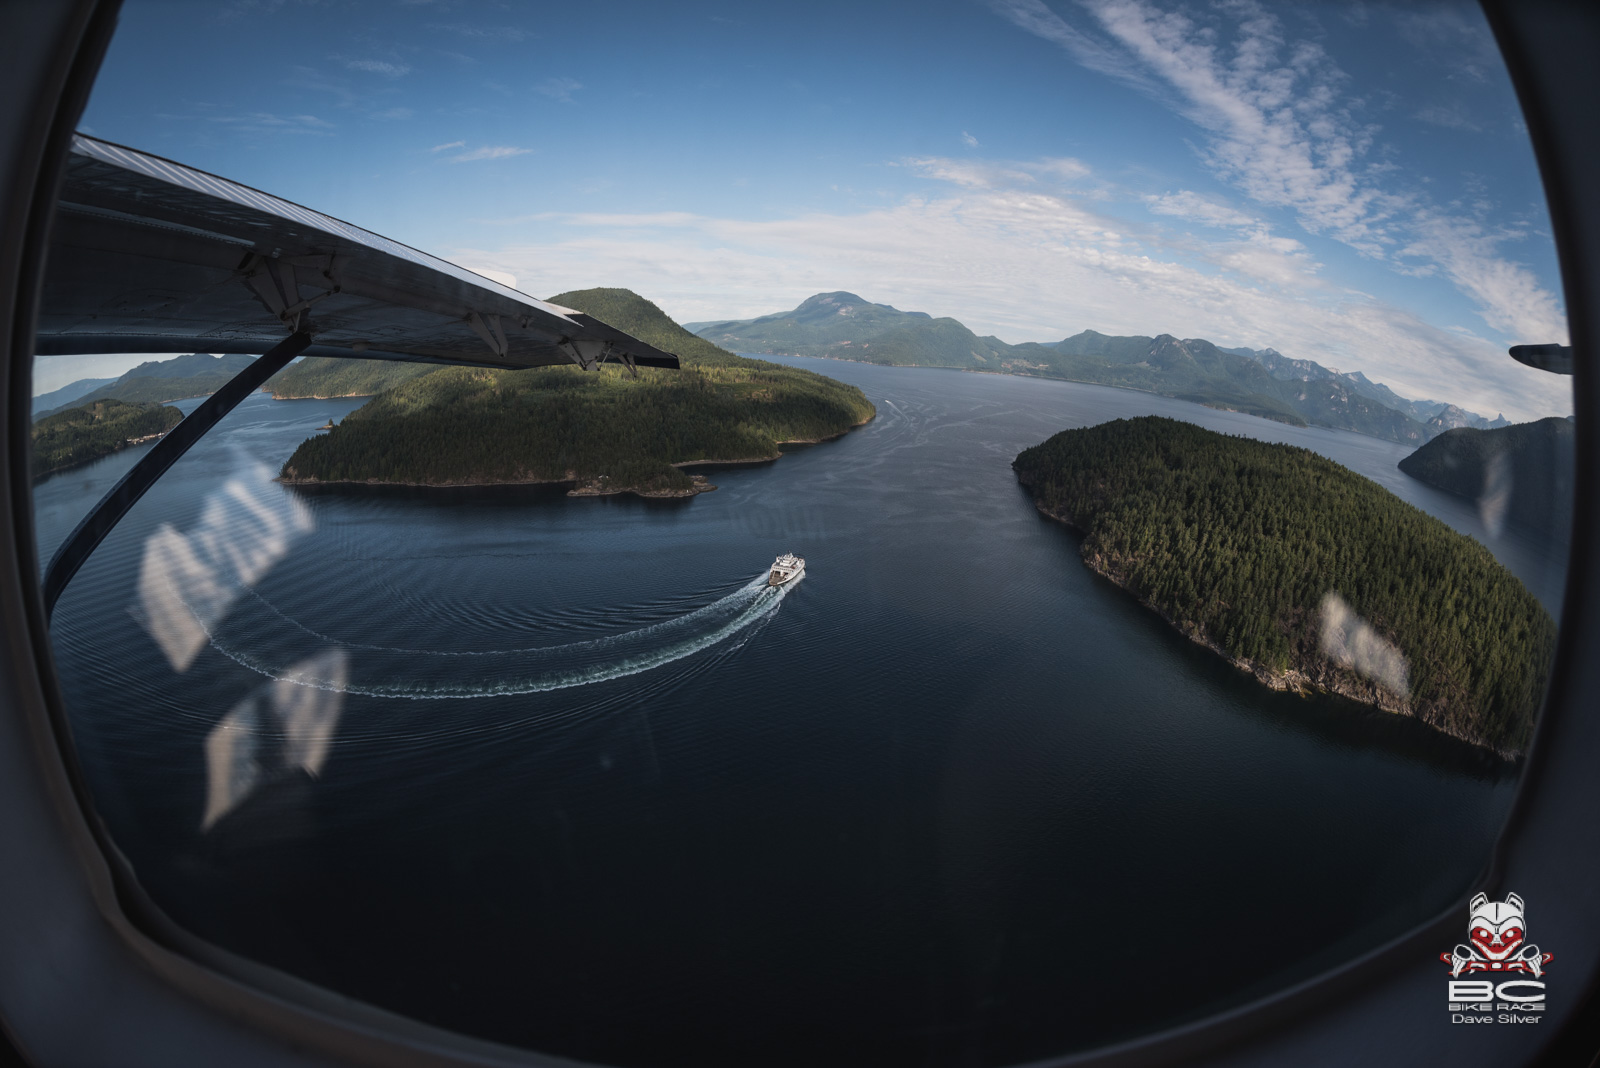 Some lucky few were forced to take to the skies on a Harbor Air seaplane. Photo: Dave Silver